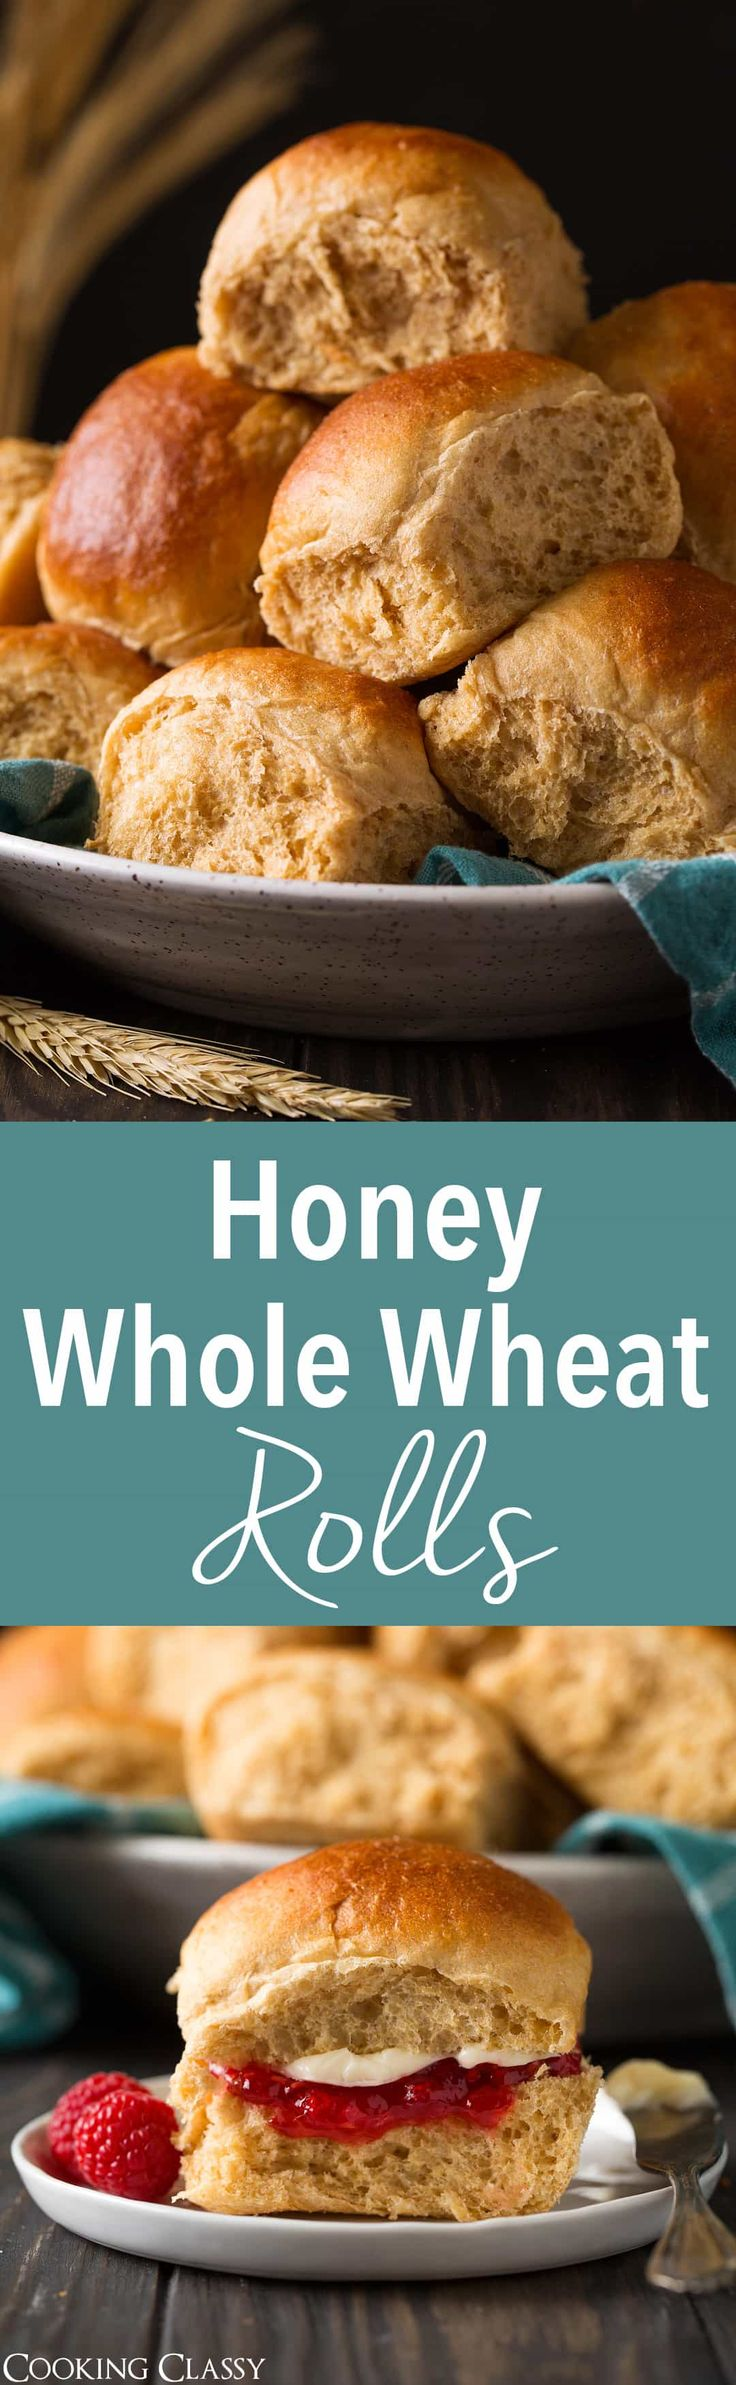 Honey Whole Wheat Rolls - Soft and fluffy rolls made from 100% whole wheat flour. Delicious with homemade freezer jam and a generous slathering of butter. via @cookingclassy